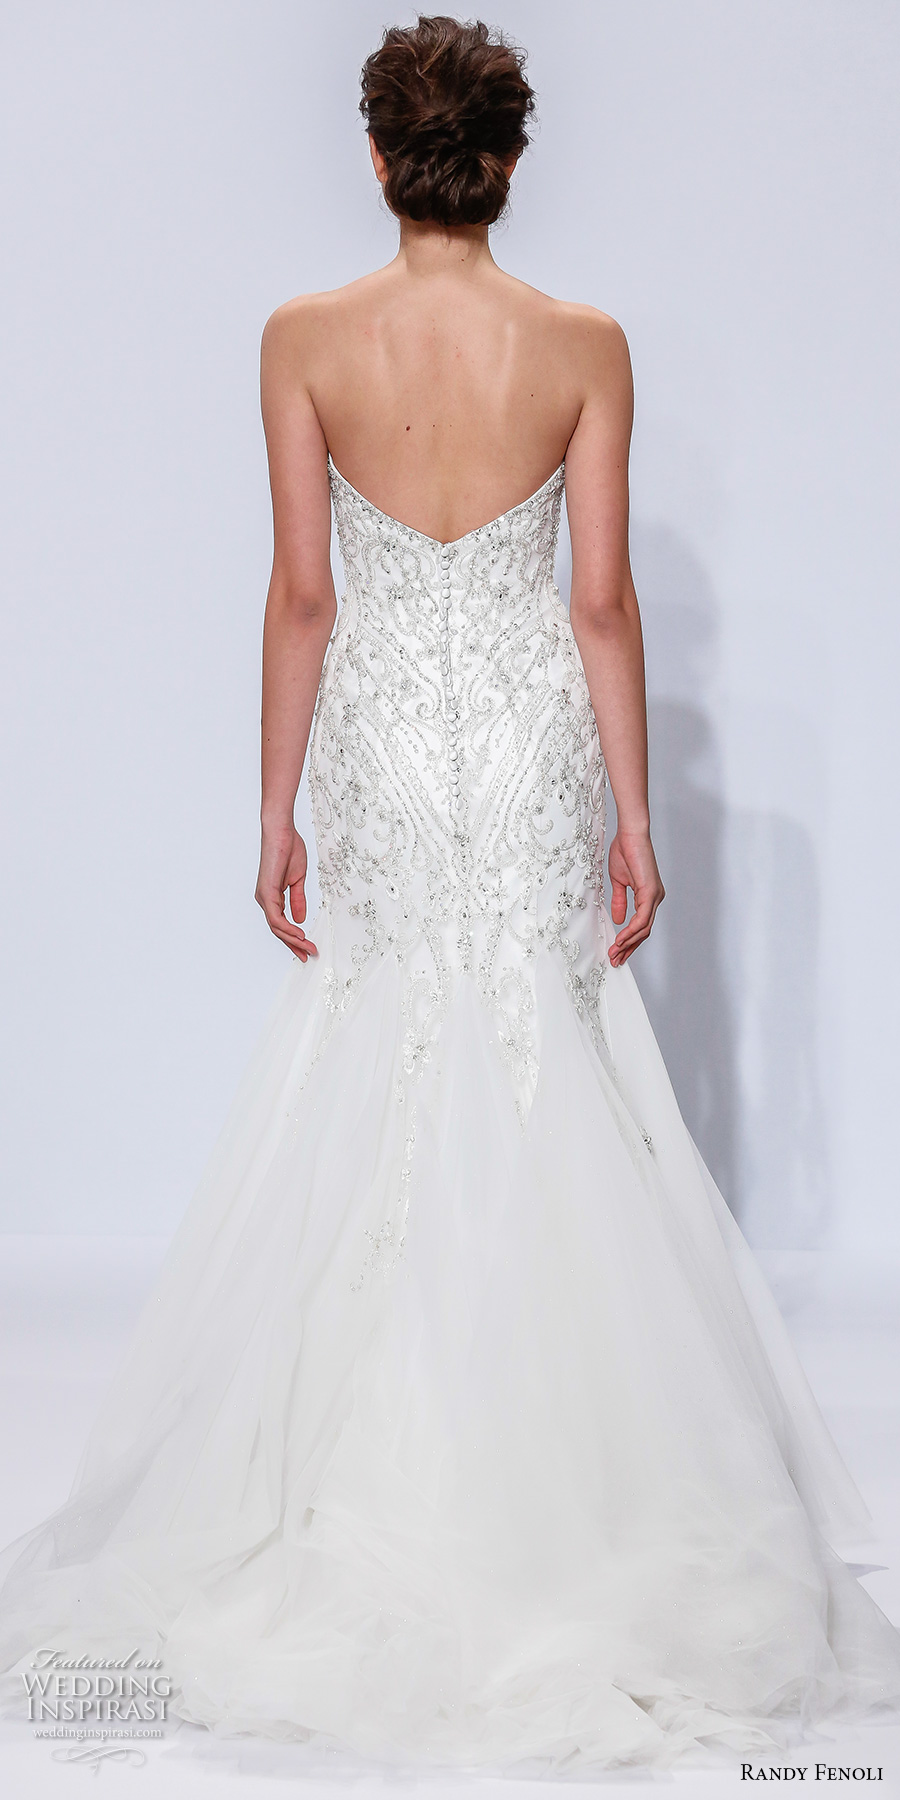 randy fenoli spring 2018 bridal strapless semi sweetheart neckline heavily embellished bodice beaded tulle skirt mermaid wedding dress chapel train (13) bv